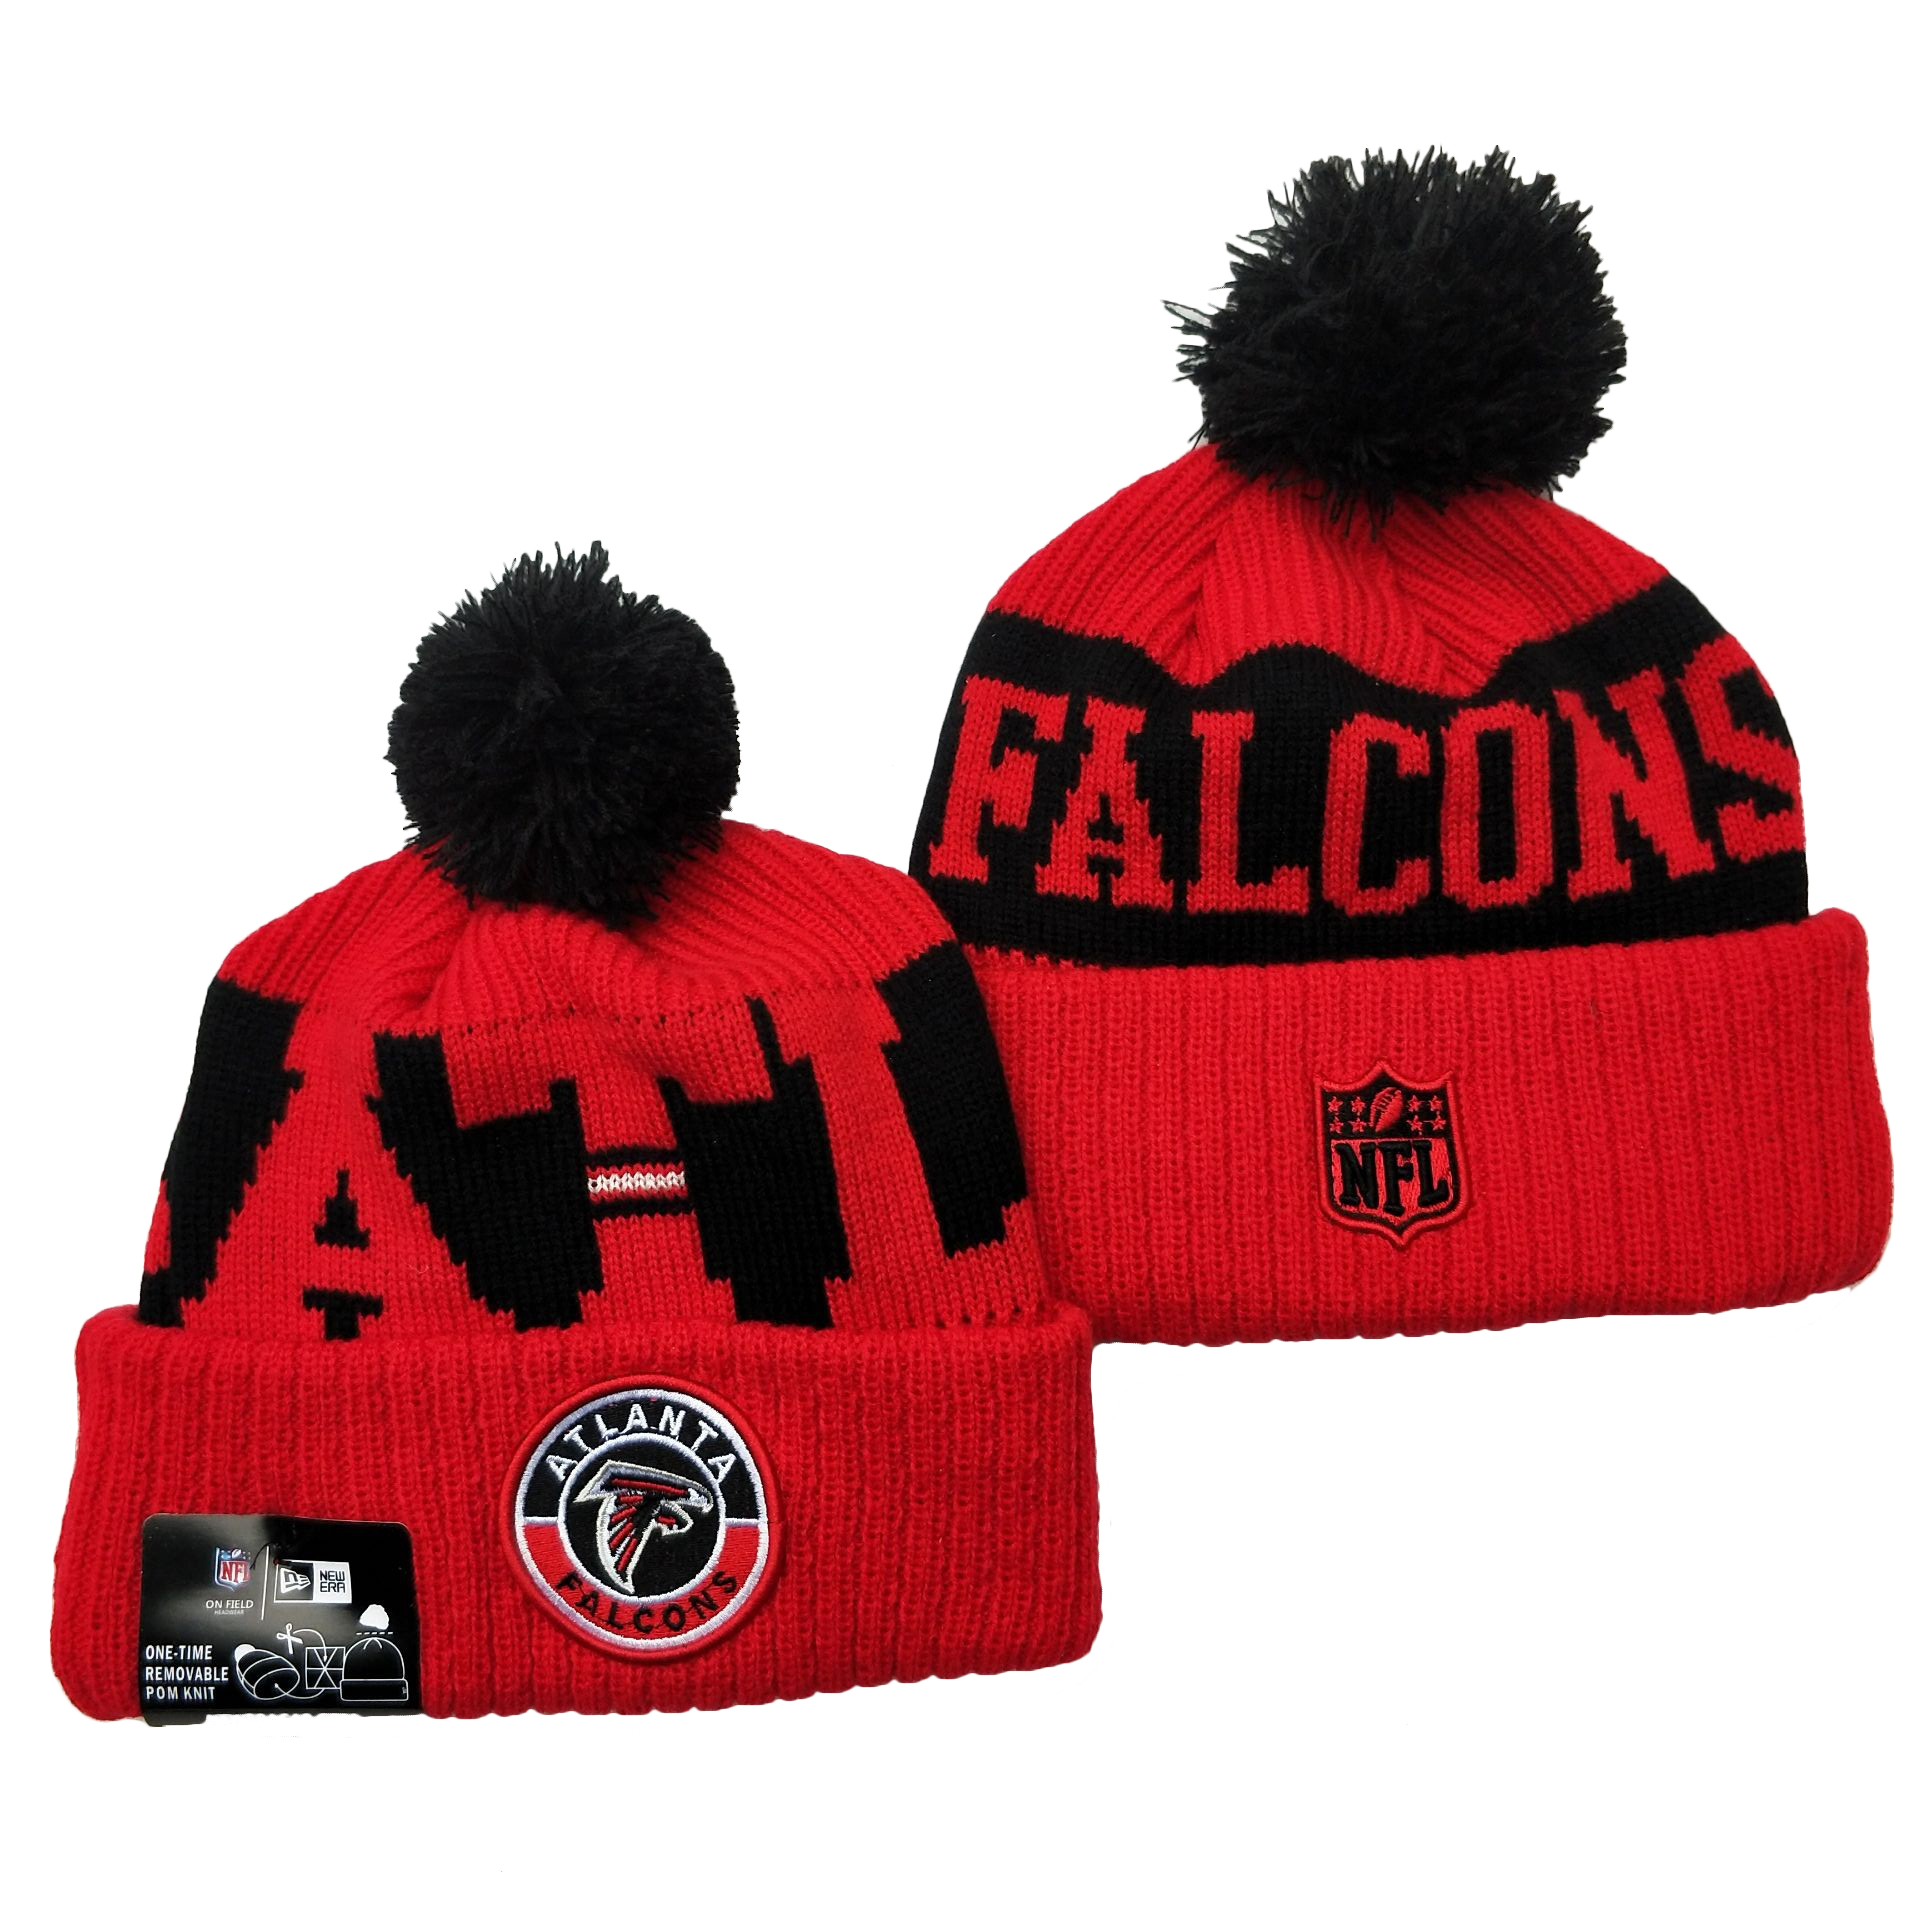 Atlanta Falcons Knit Hats 060